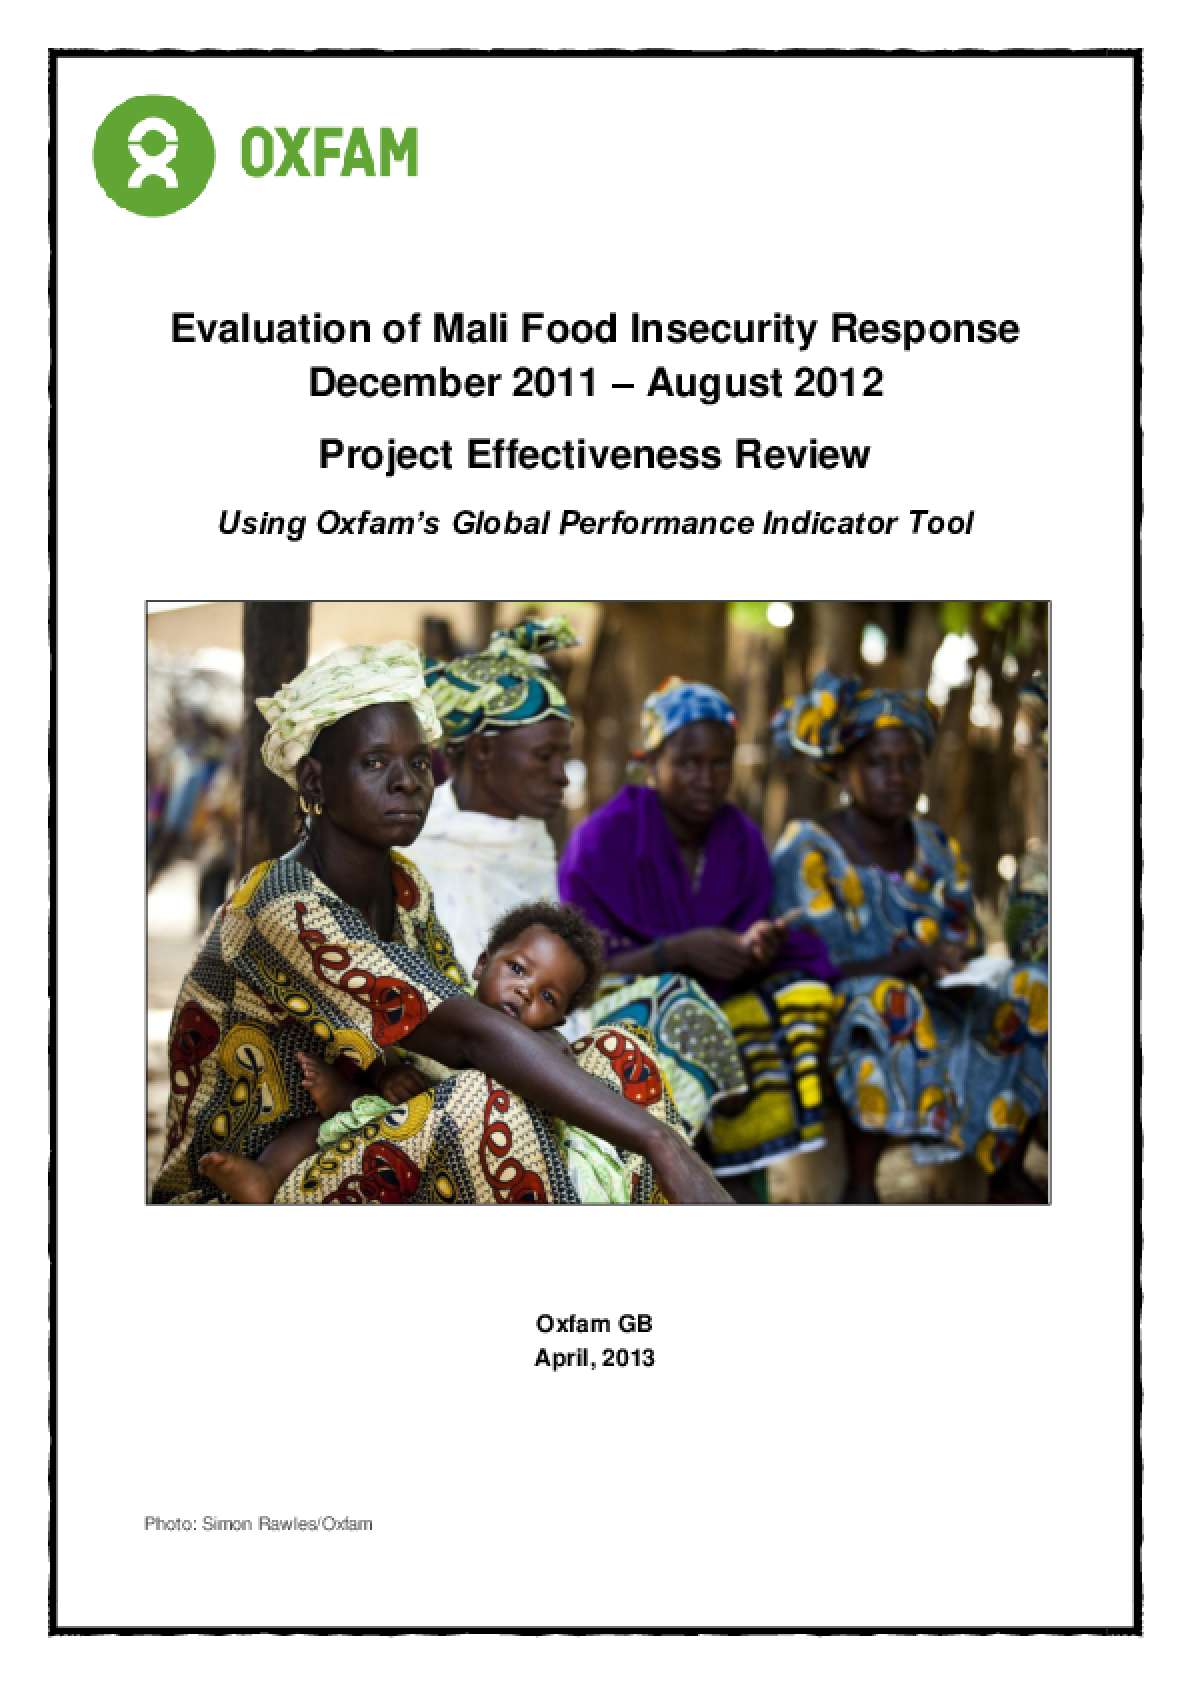 Effectiveness Reviews: Evaluation of Mali Food Insecurity Response